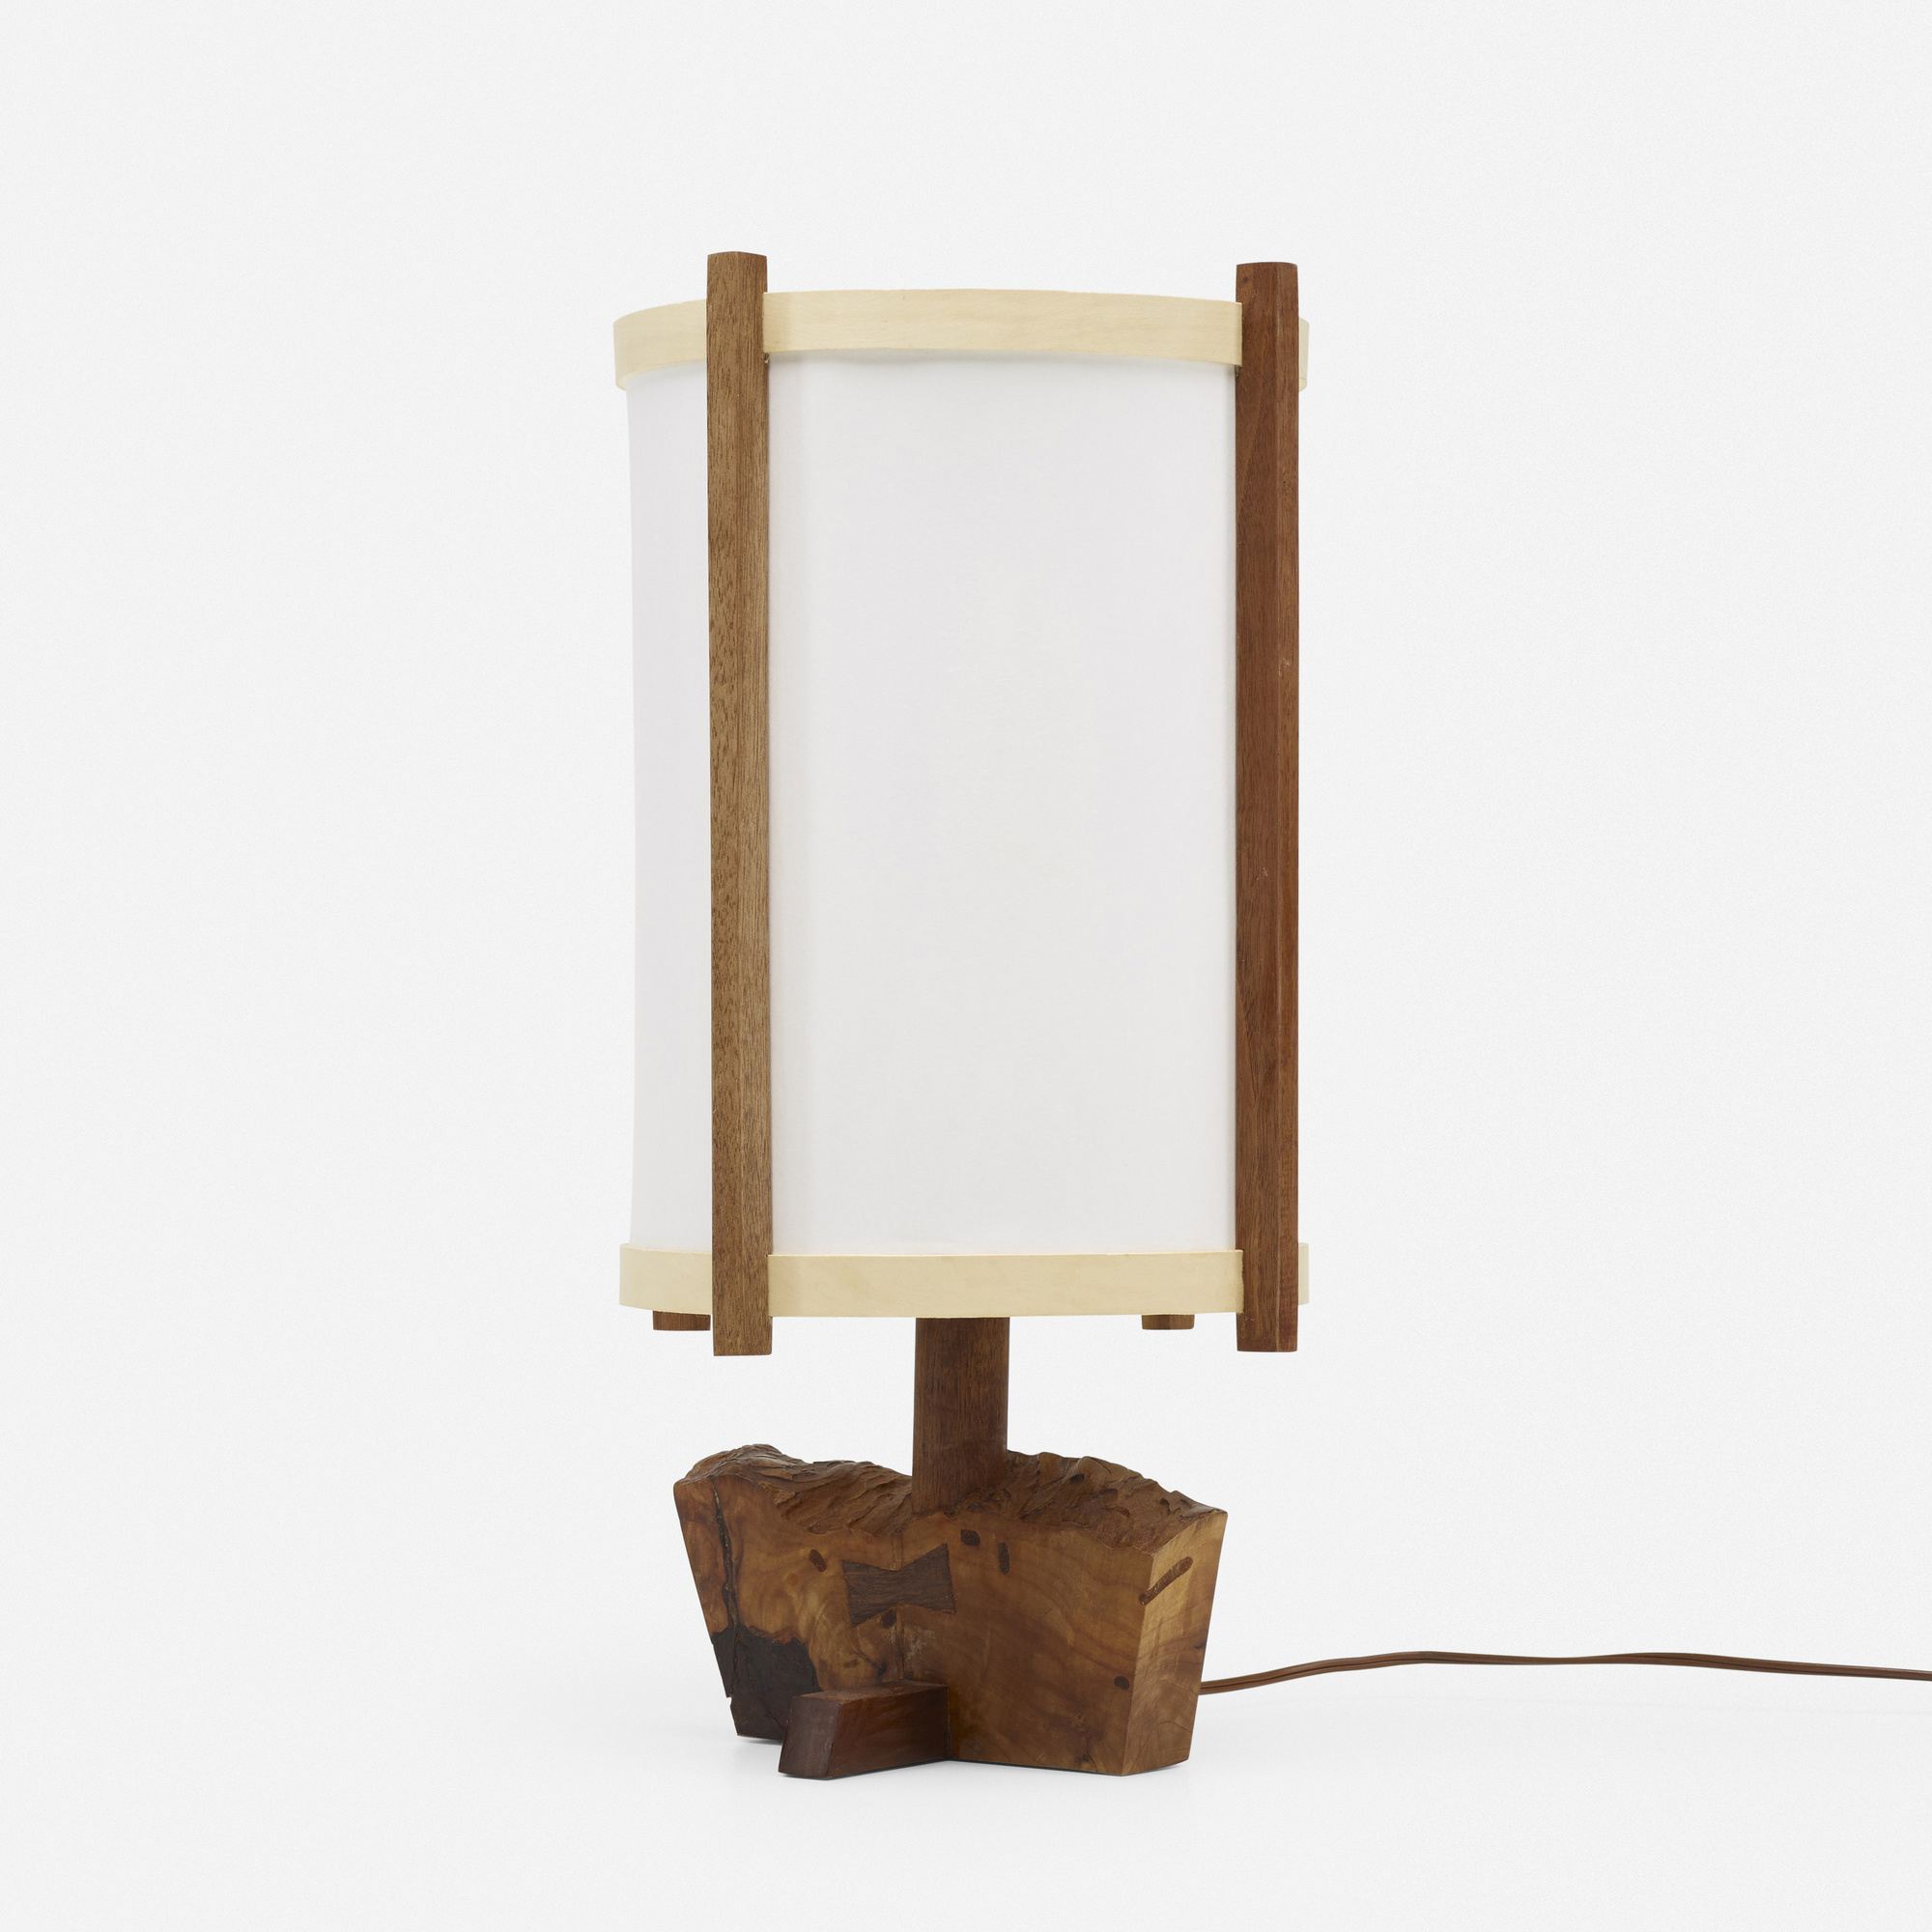 126: American Craft / table lamp (1 of 2)